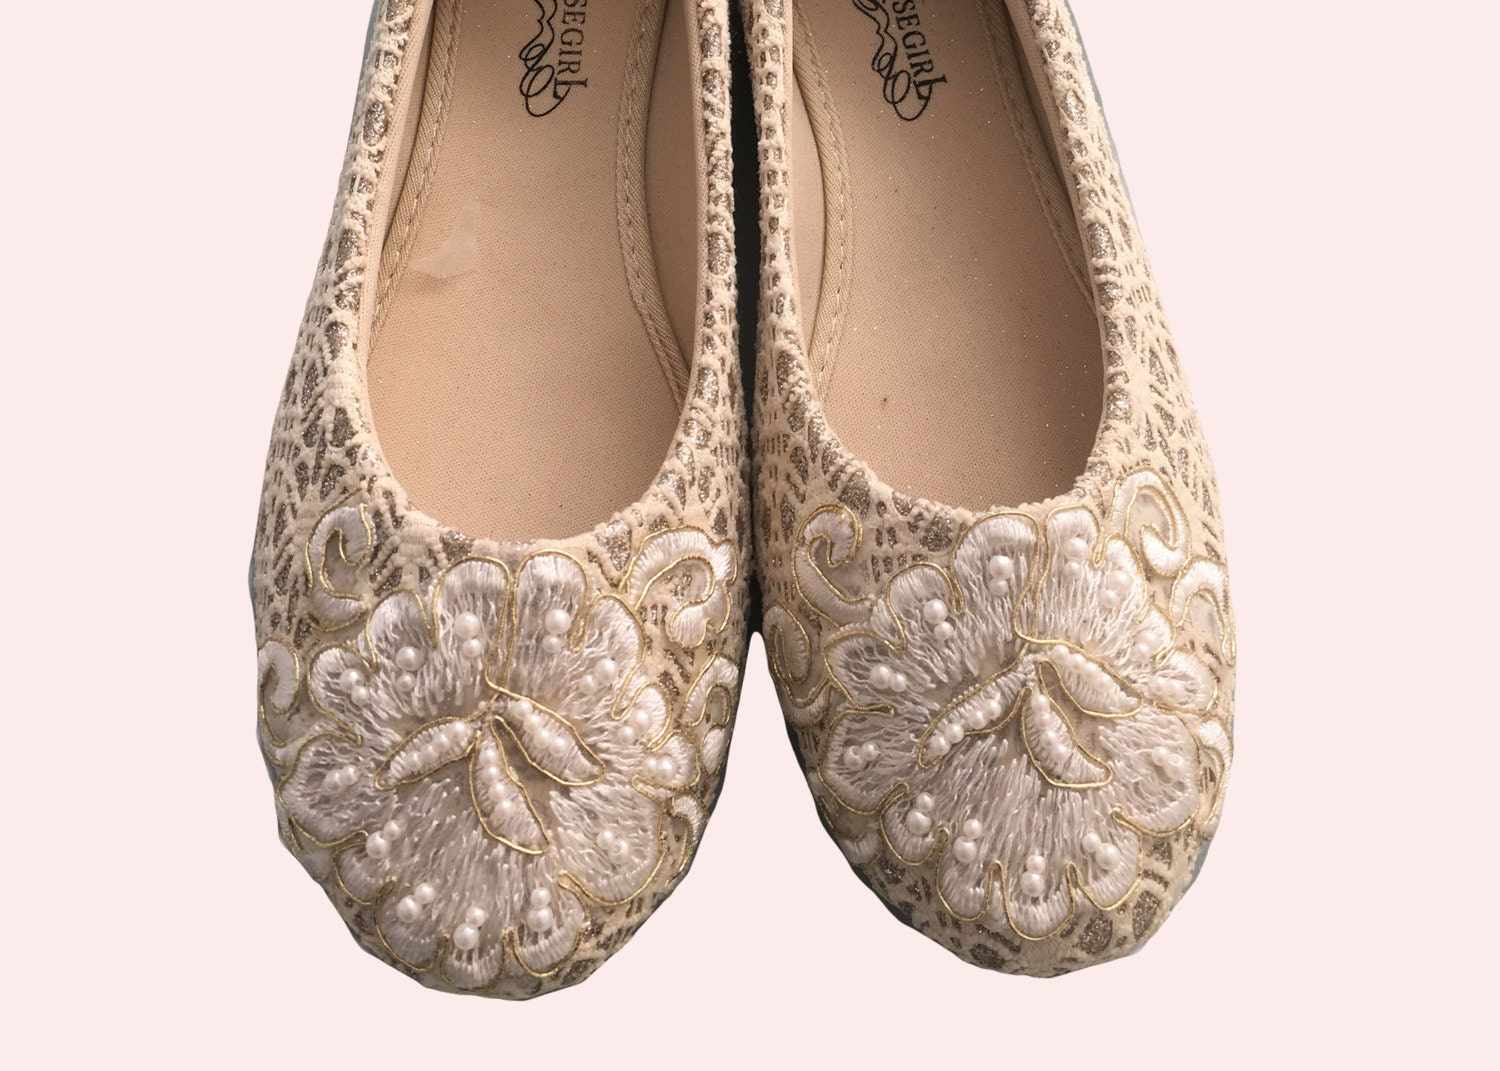 lace bridal bridesmaid dress ballet flats wedding shoes With dress flats for wedding